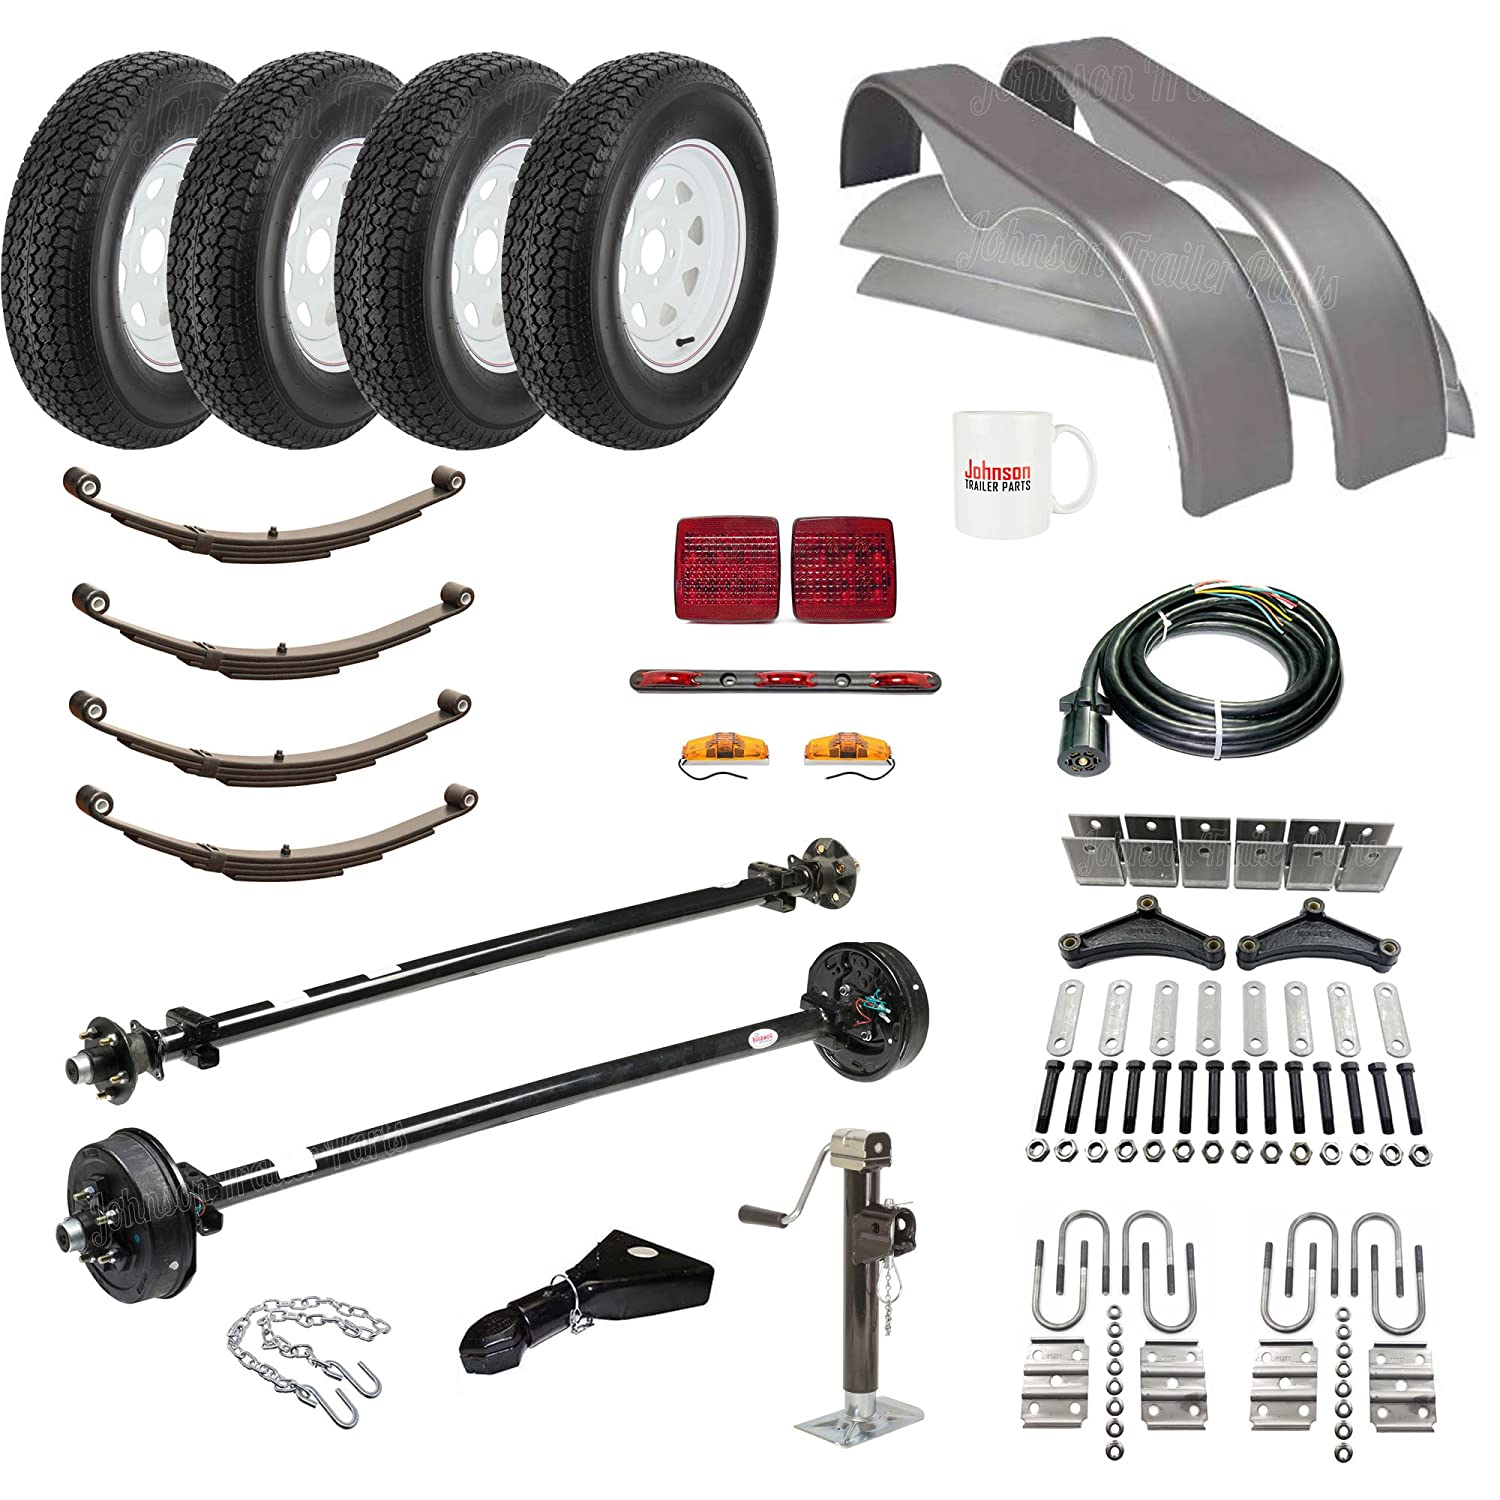 "Amazon.com: Tandem Axle Trailer Parts Kit - (95"" Hubface - 80"" Spring  Center) - 7,000 lb Capacity - Brakes on 1 Axle - Made in USA: Automotive"